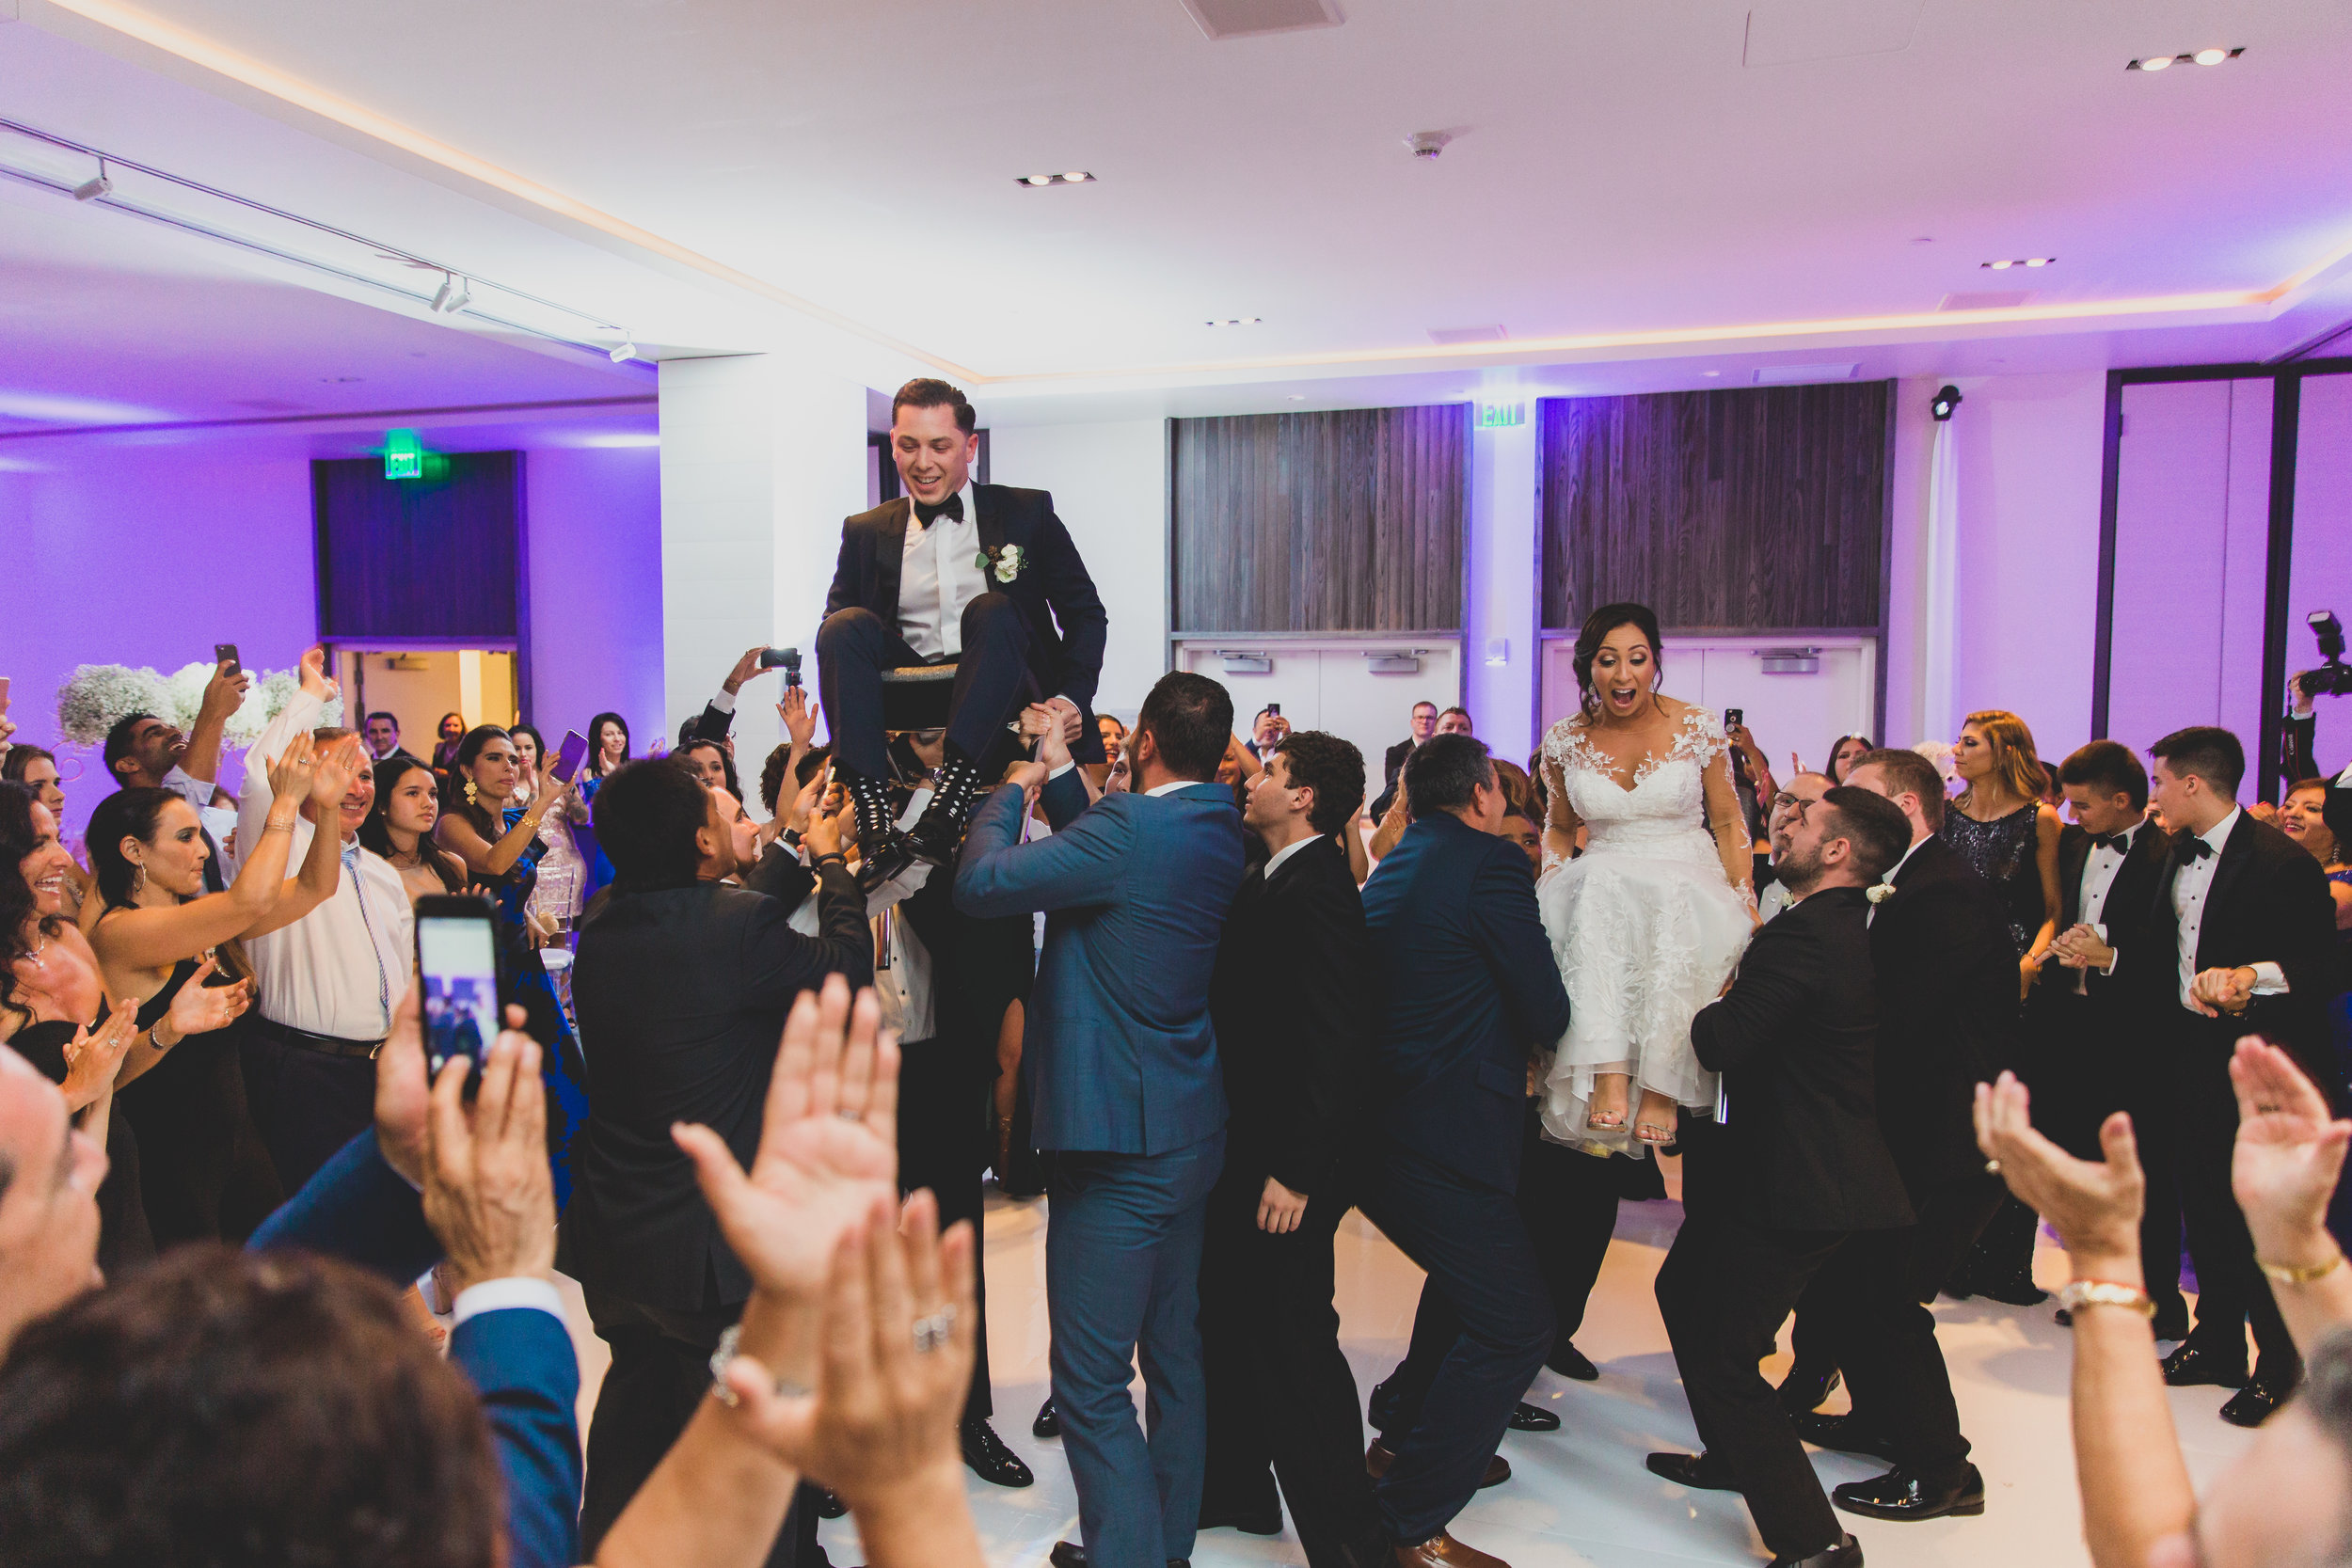 A bride and groom being hoisted into the air on chairs at their wedding.